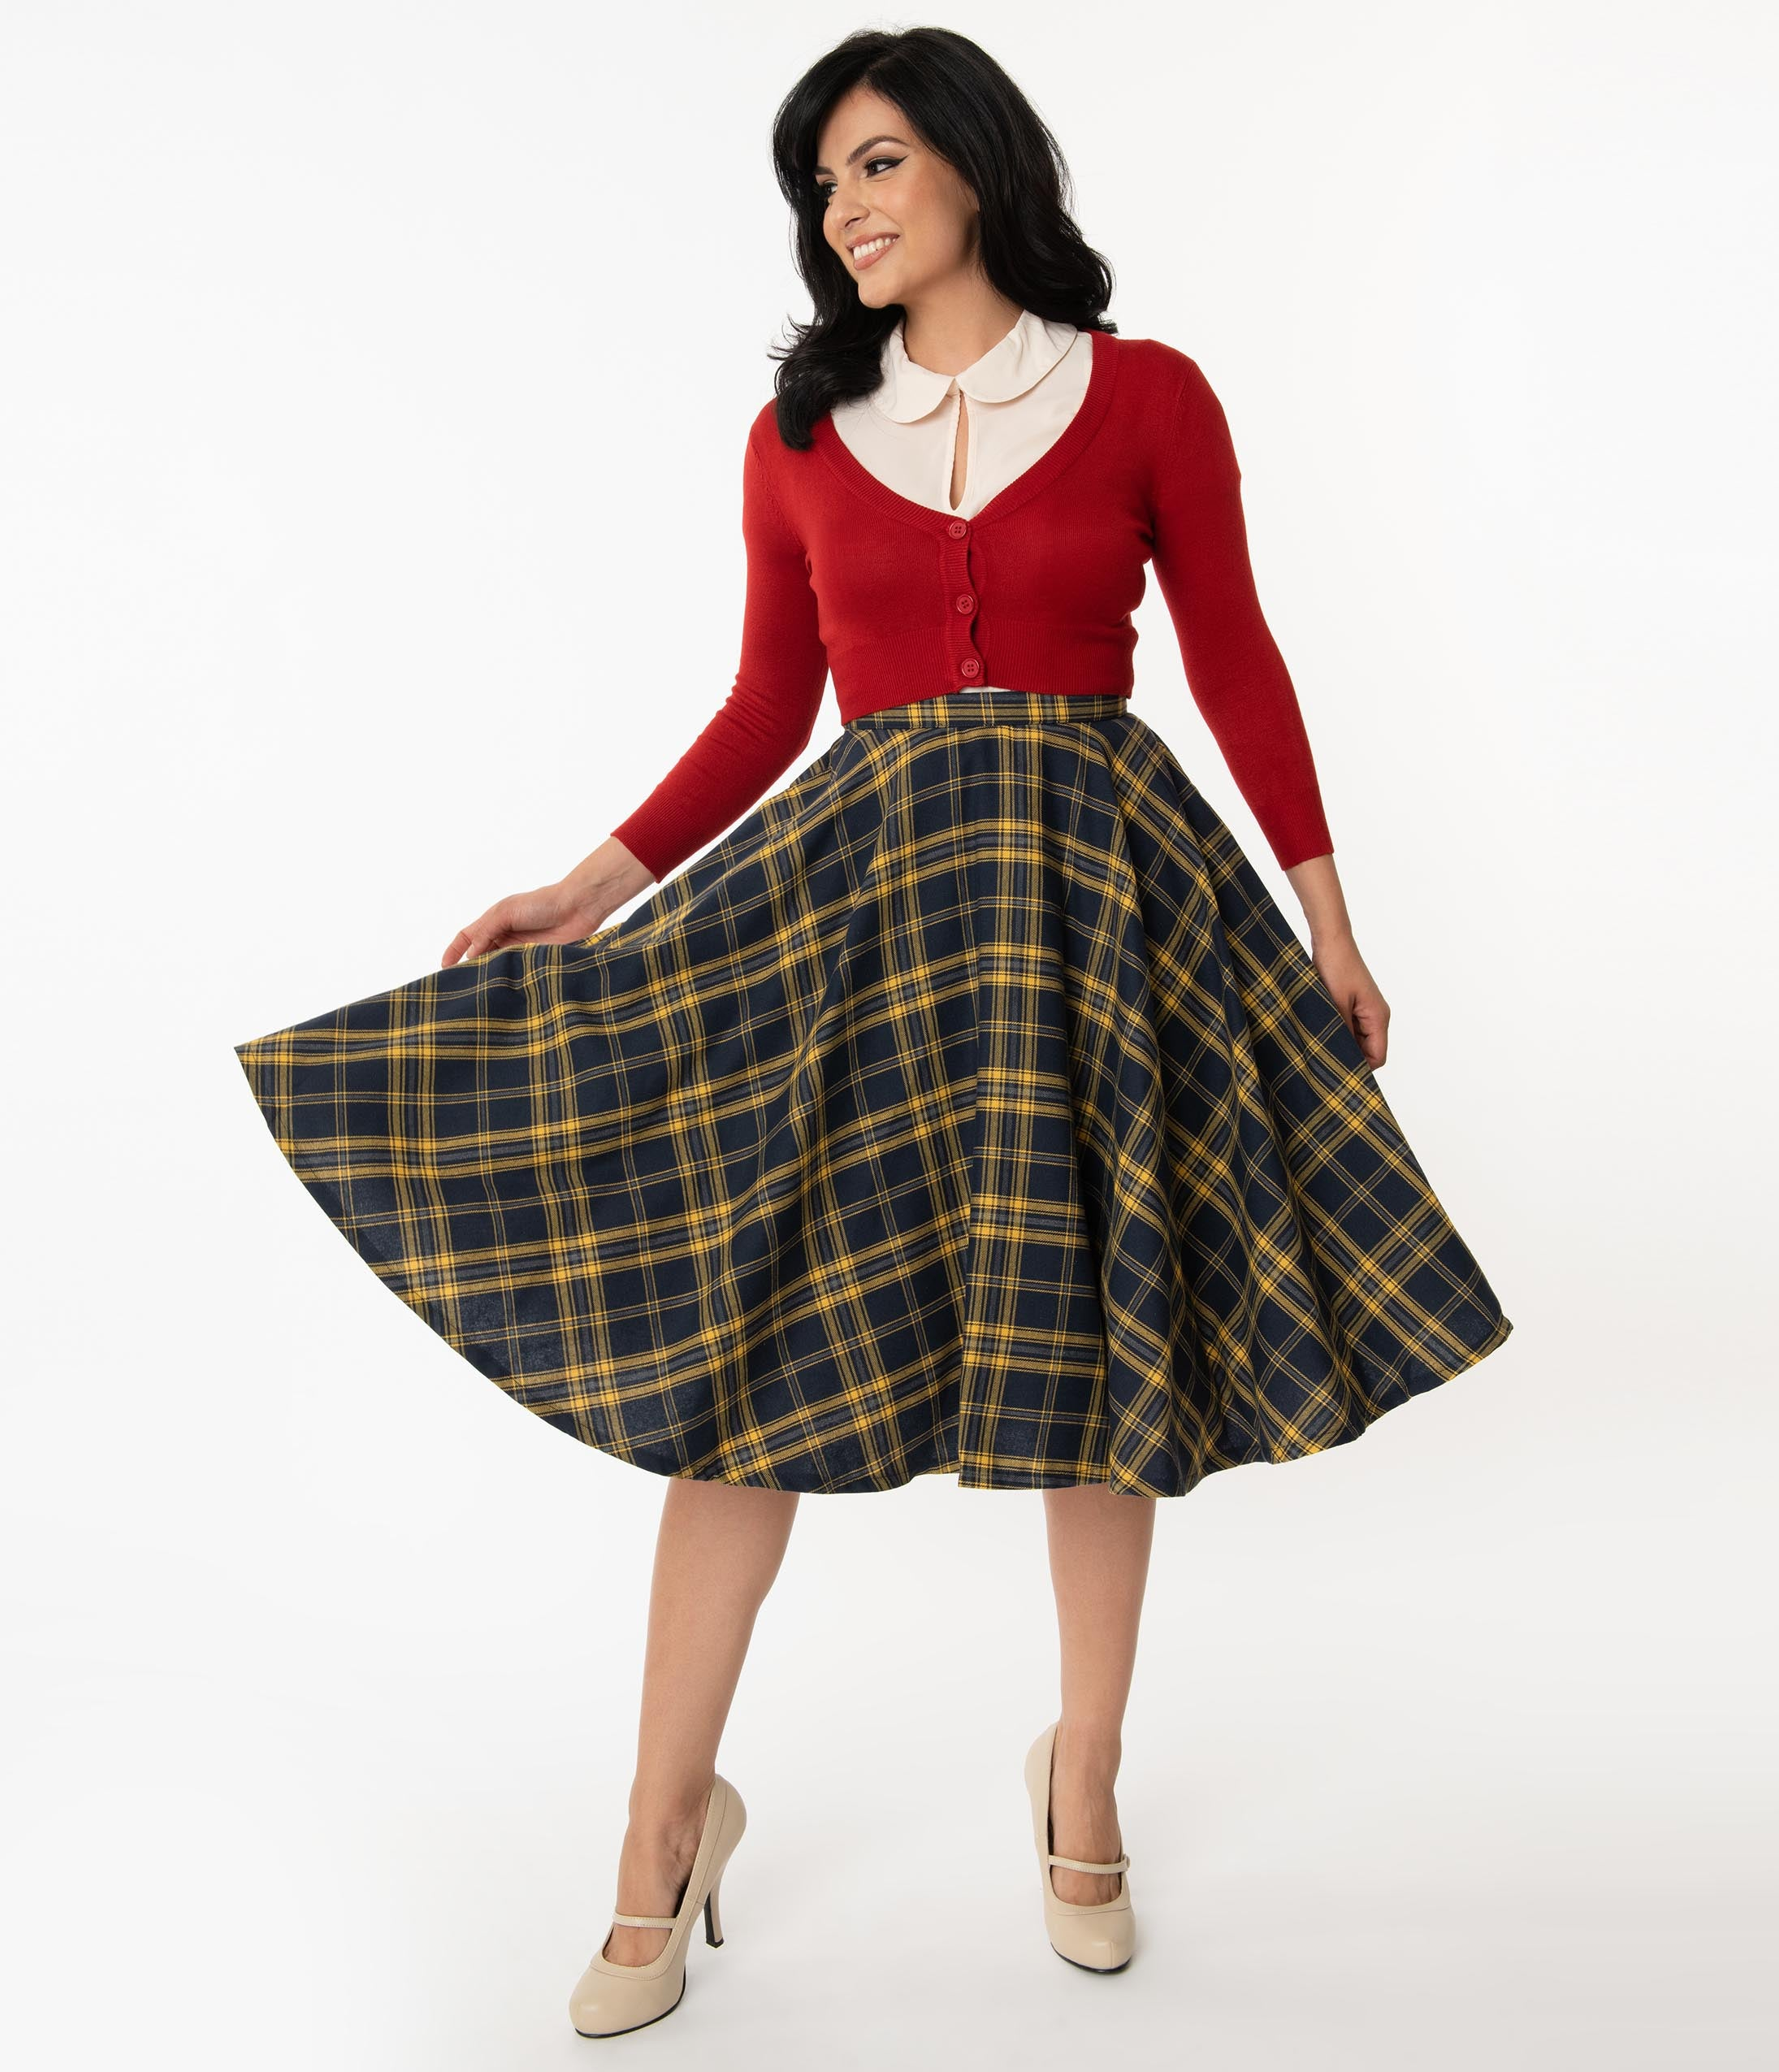 1950s Swing Skirt, Poodle Skirt, Pencil Skirts Vintage Style Navy  Yellow Plaid Circle Swing Skirt $58.00 AT vintagedancer.com